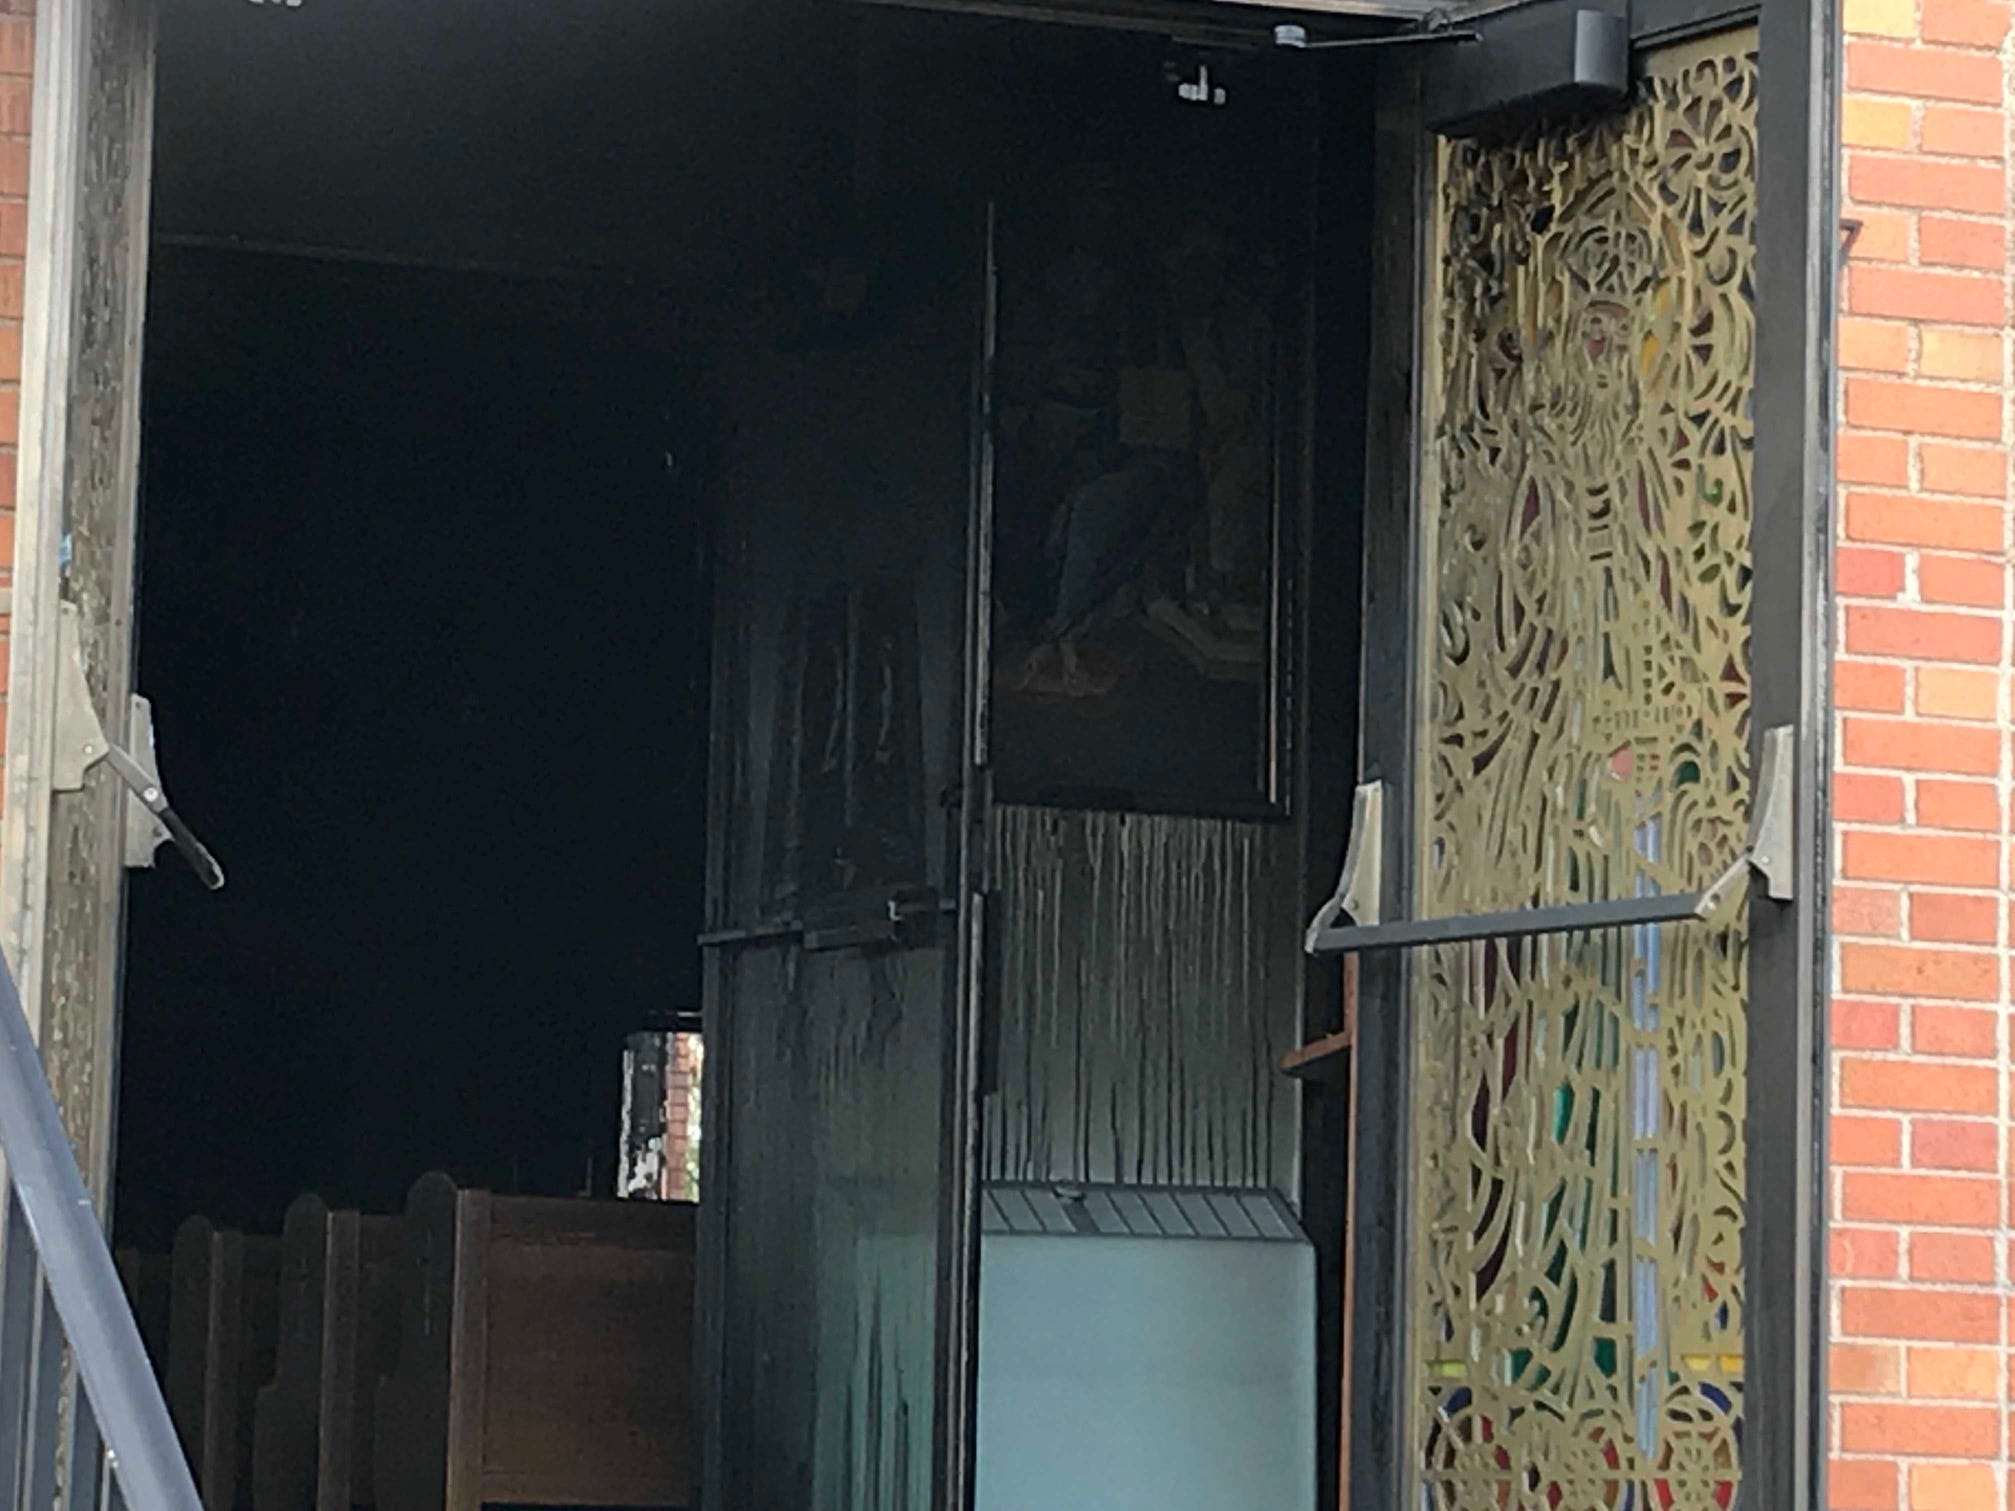 The charred dark interior of St. Mary's Ukrainian Catholic Church in Carteret following a two-alarm fire Tuesday night.